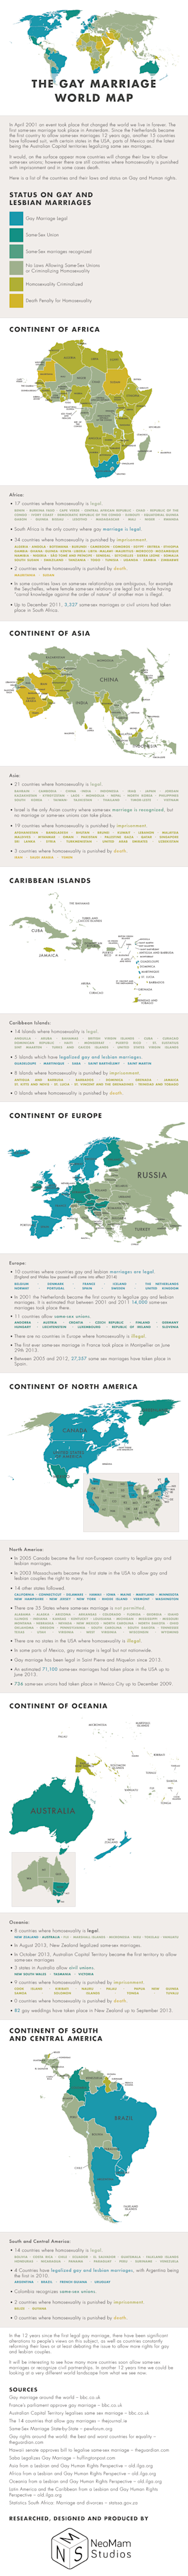 The Gay Marriage World Map [Infographic] image the gay marriage world map logo